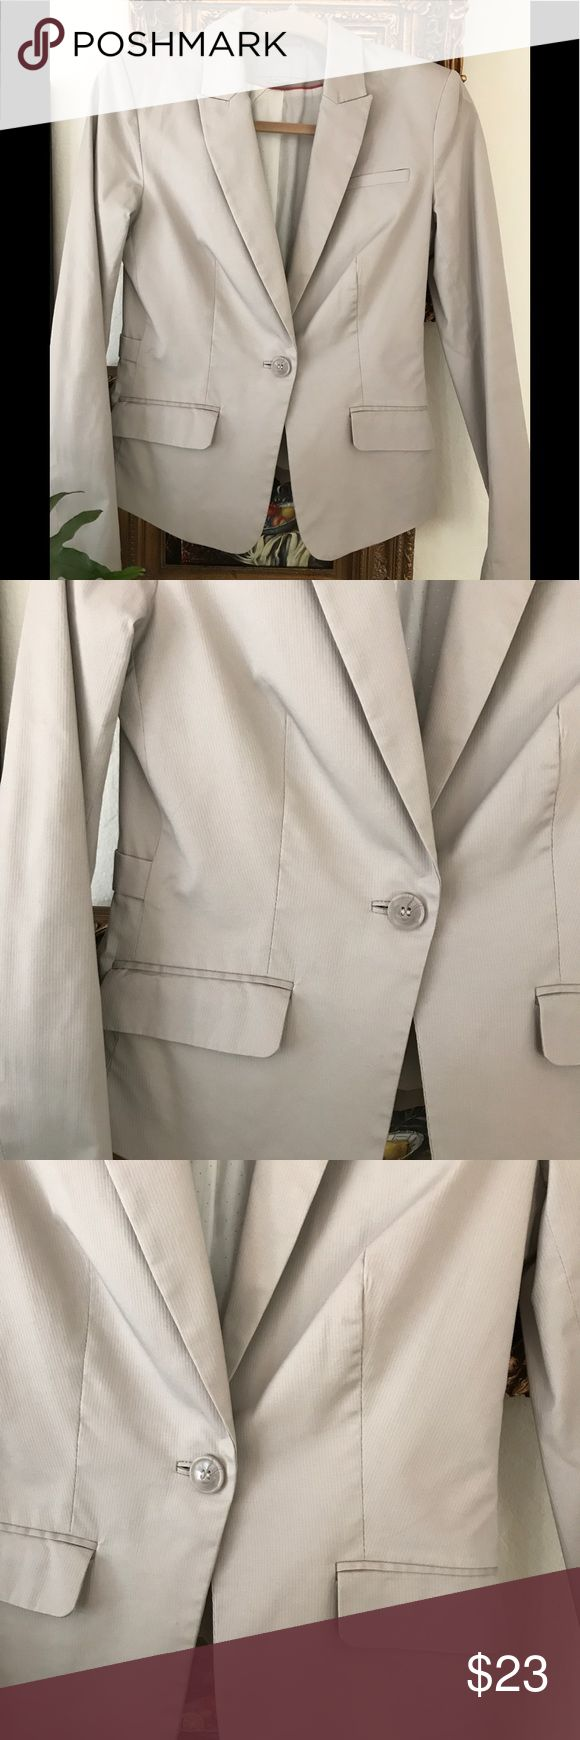 Khaki Blazer 98% Cotton In nearly new condition.  Perfect for the office or over a sexy camisole and skinnies. H&M Jackets & Coats Blazers